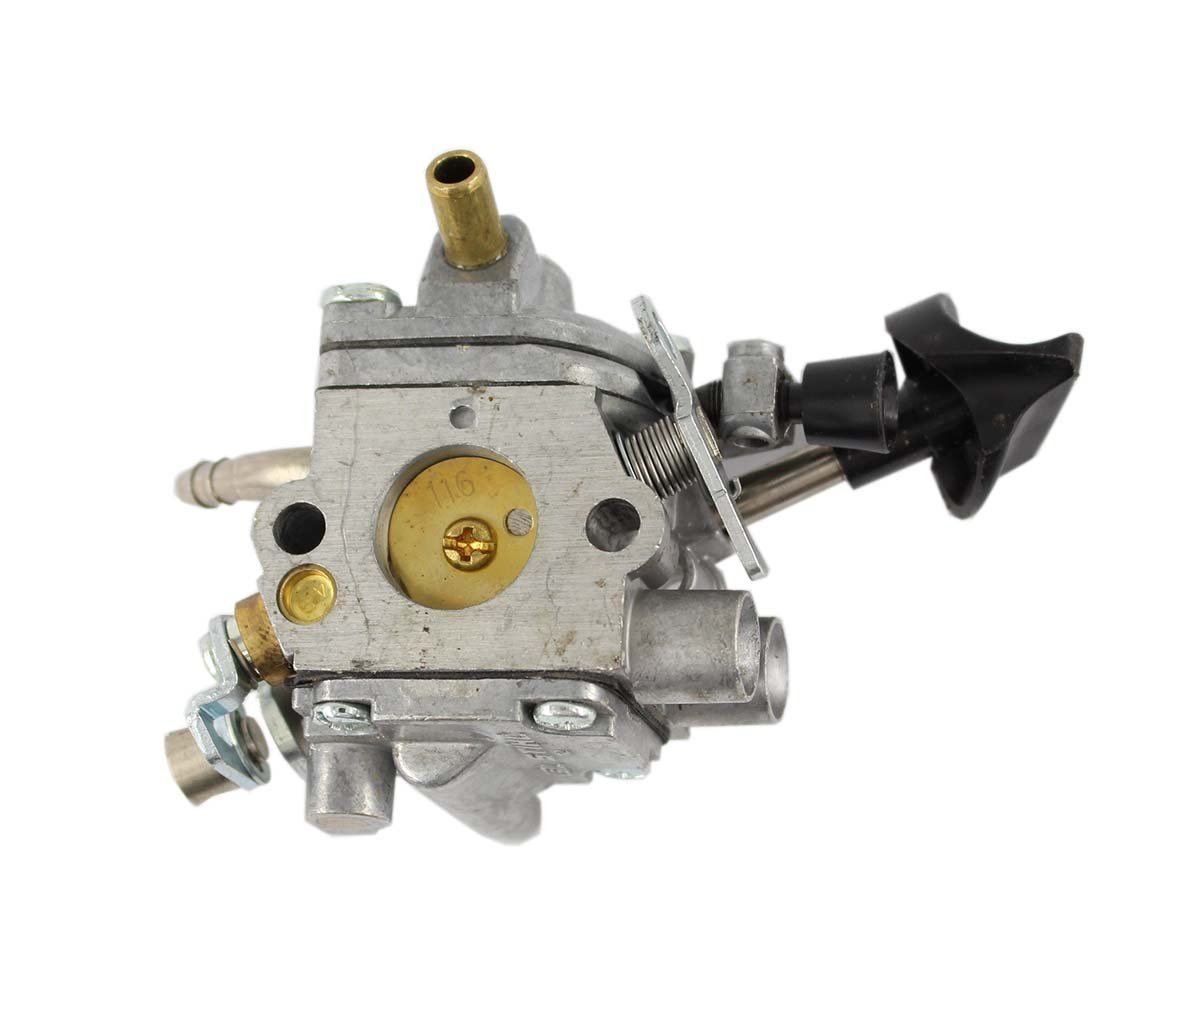 Amible Carburetor Carb for Stihl Br500 Br550 Br600 Backpack Blower Replace Zama C1q-s183 4282-120-0606 4282-120-0607 4282-120-0608